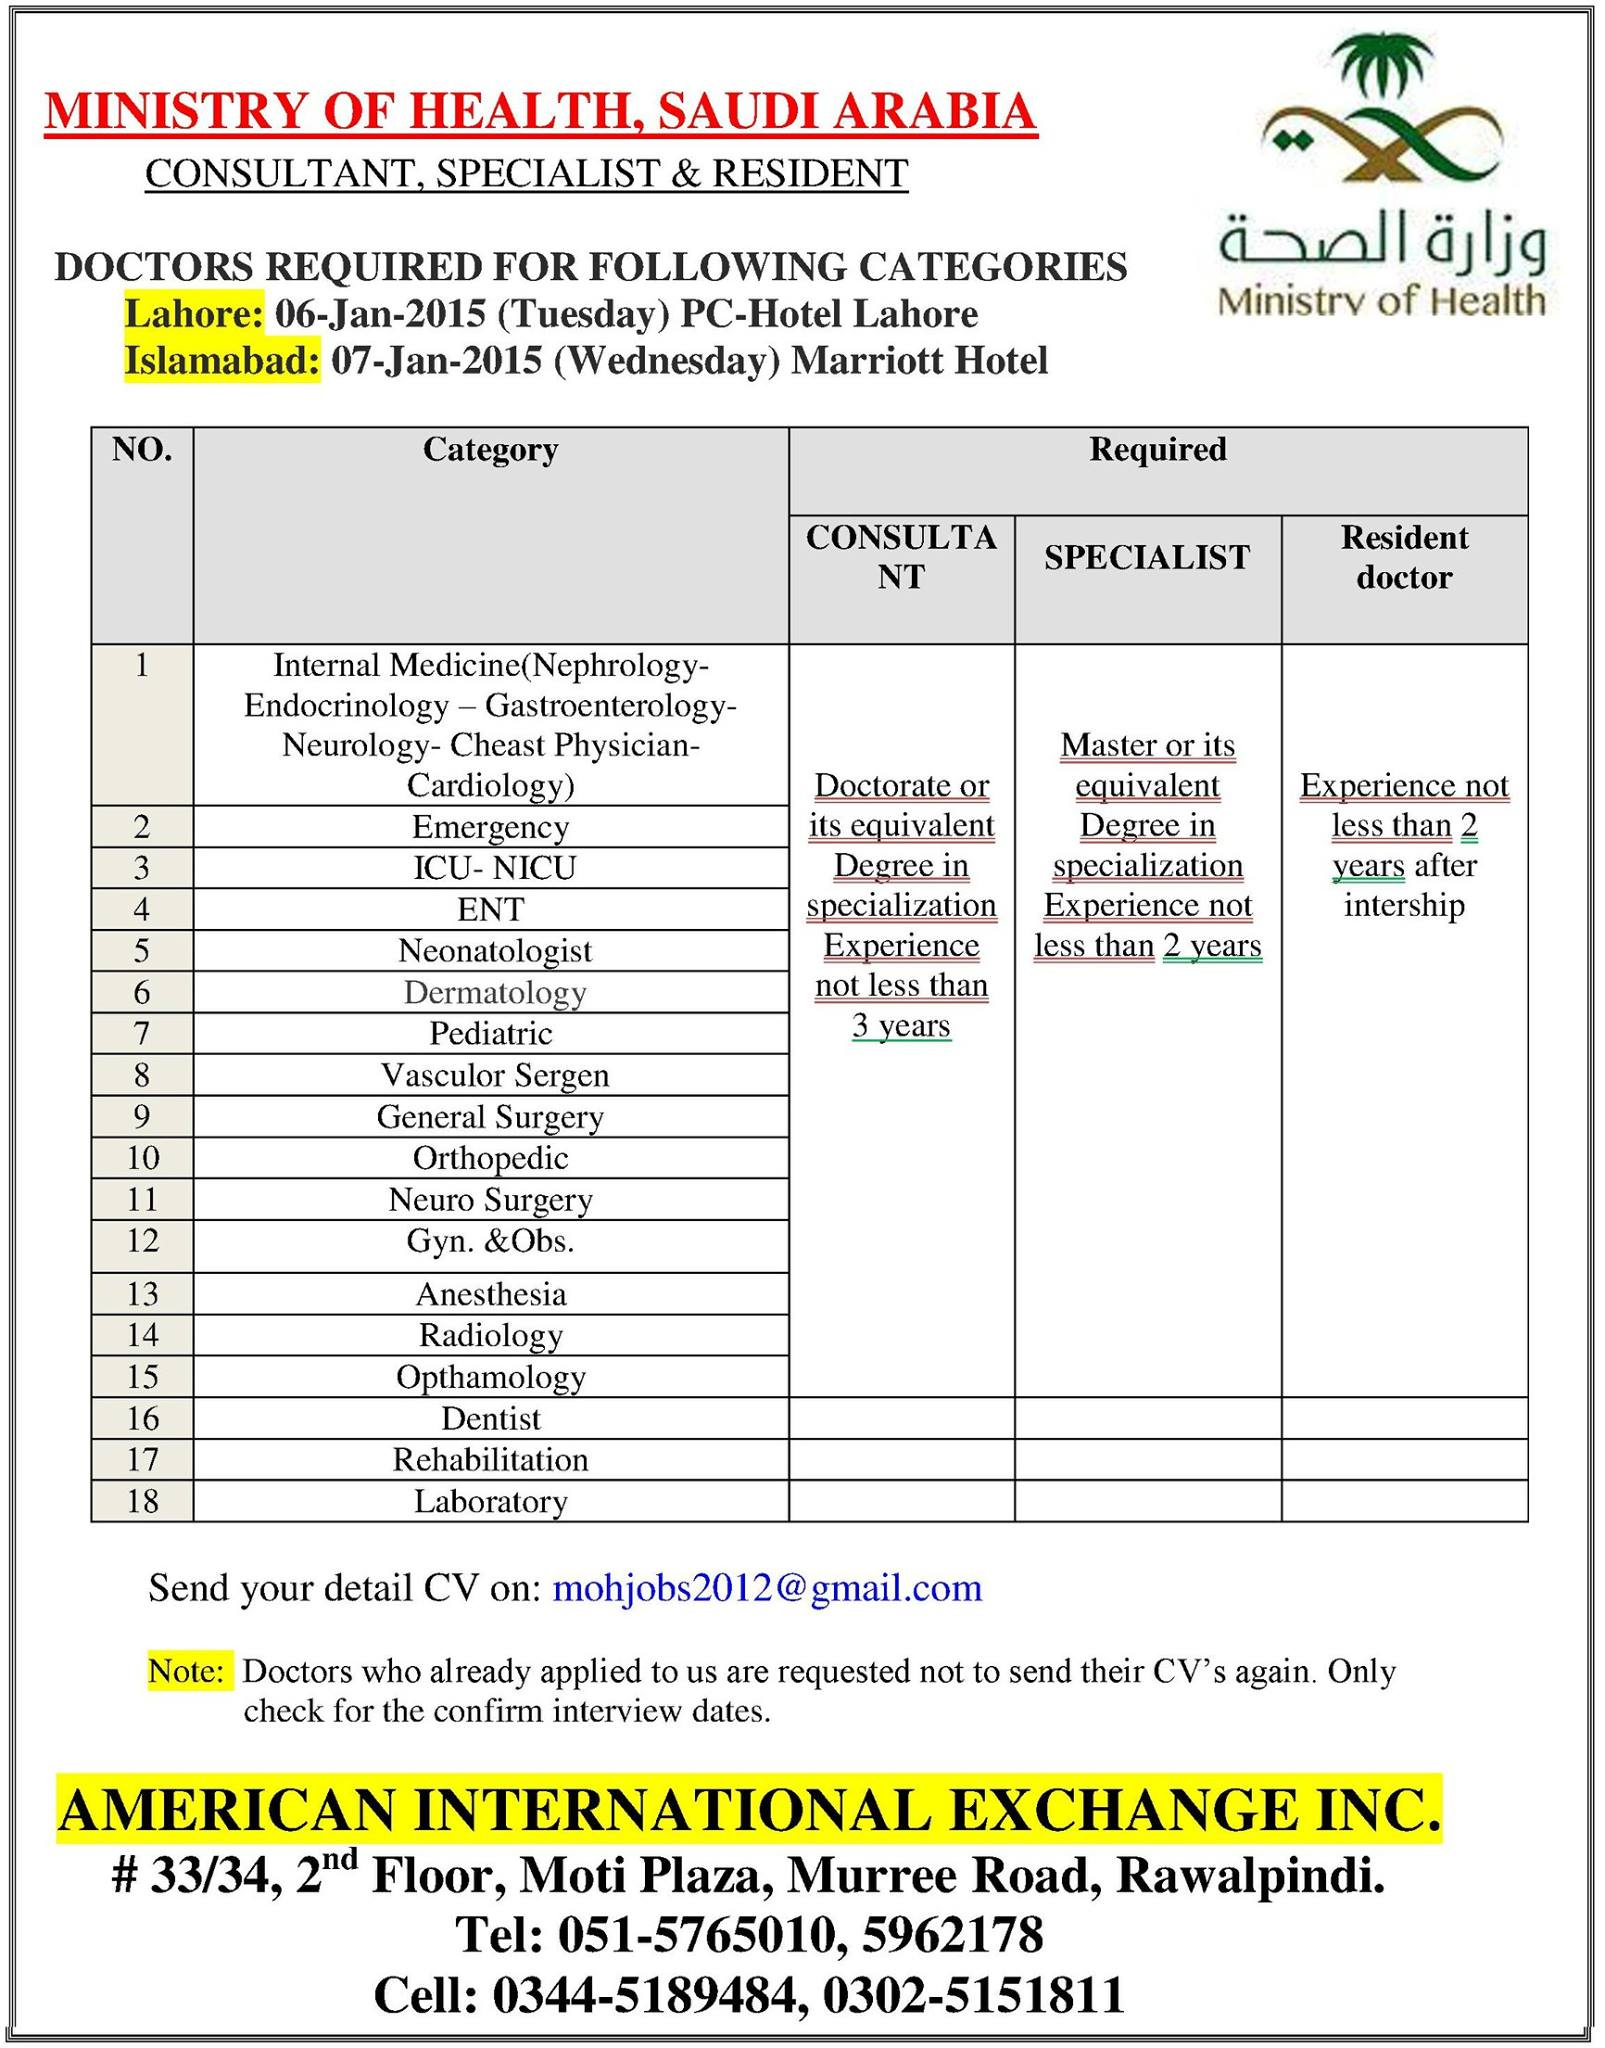 Residents Doctors Required Ministry of Health Saudi Arabia ...